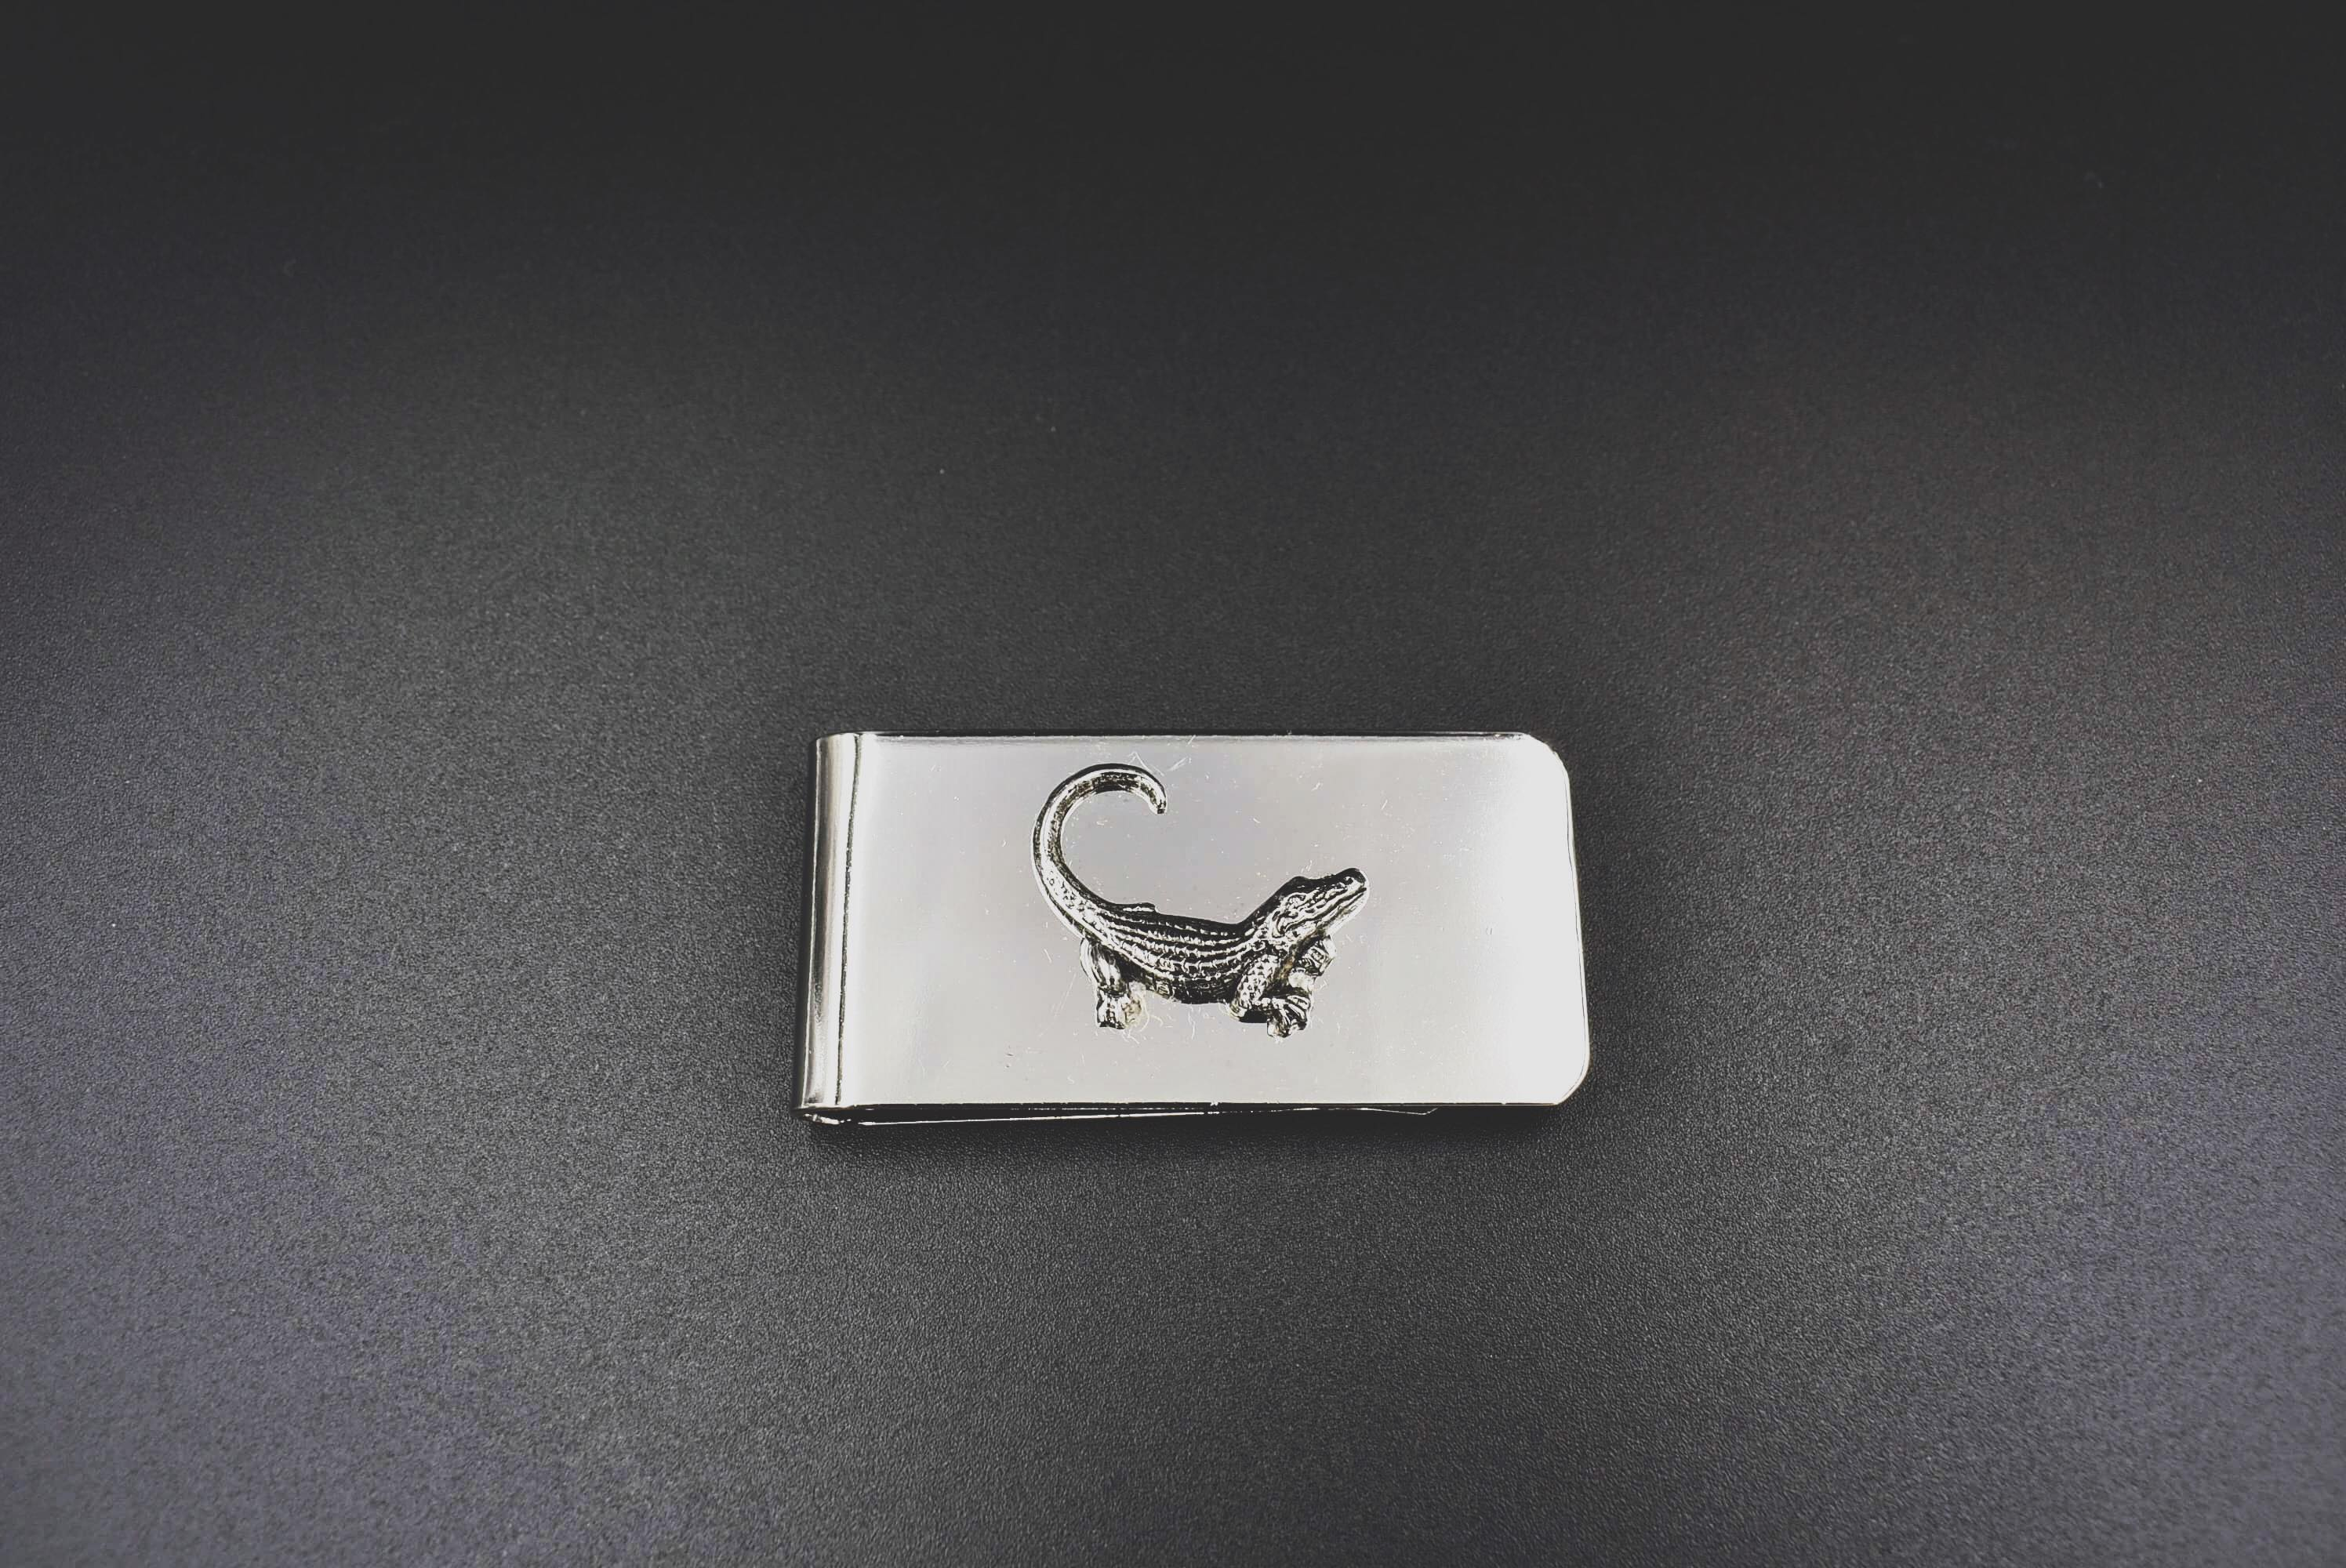 Gator Money Clip